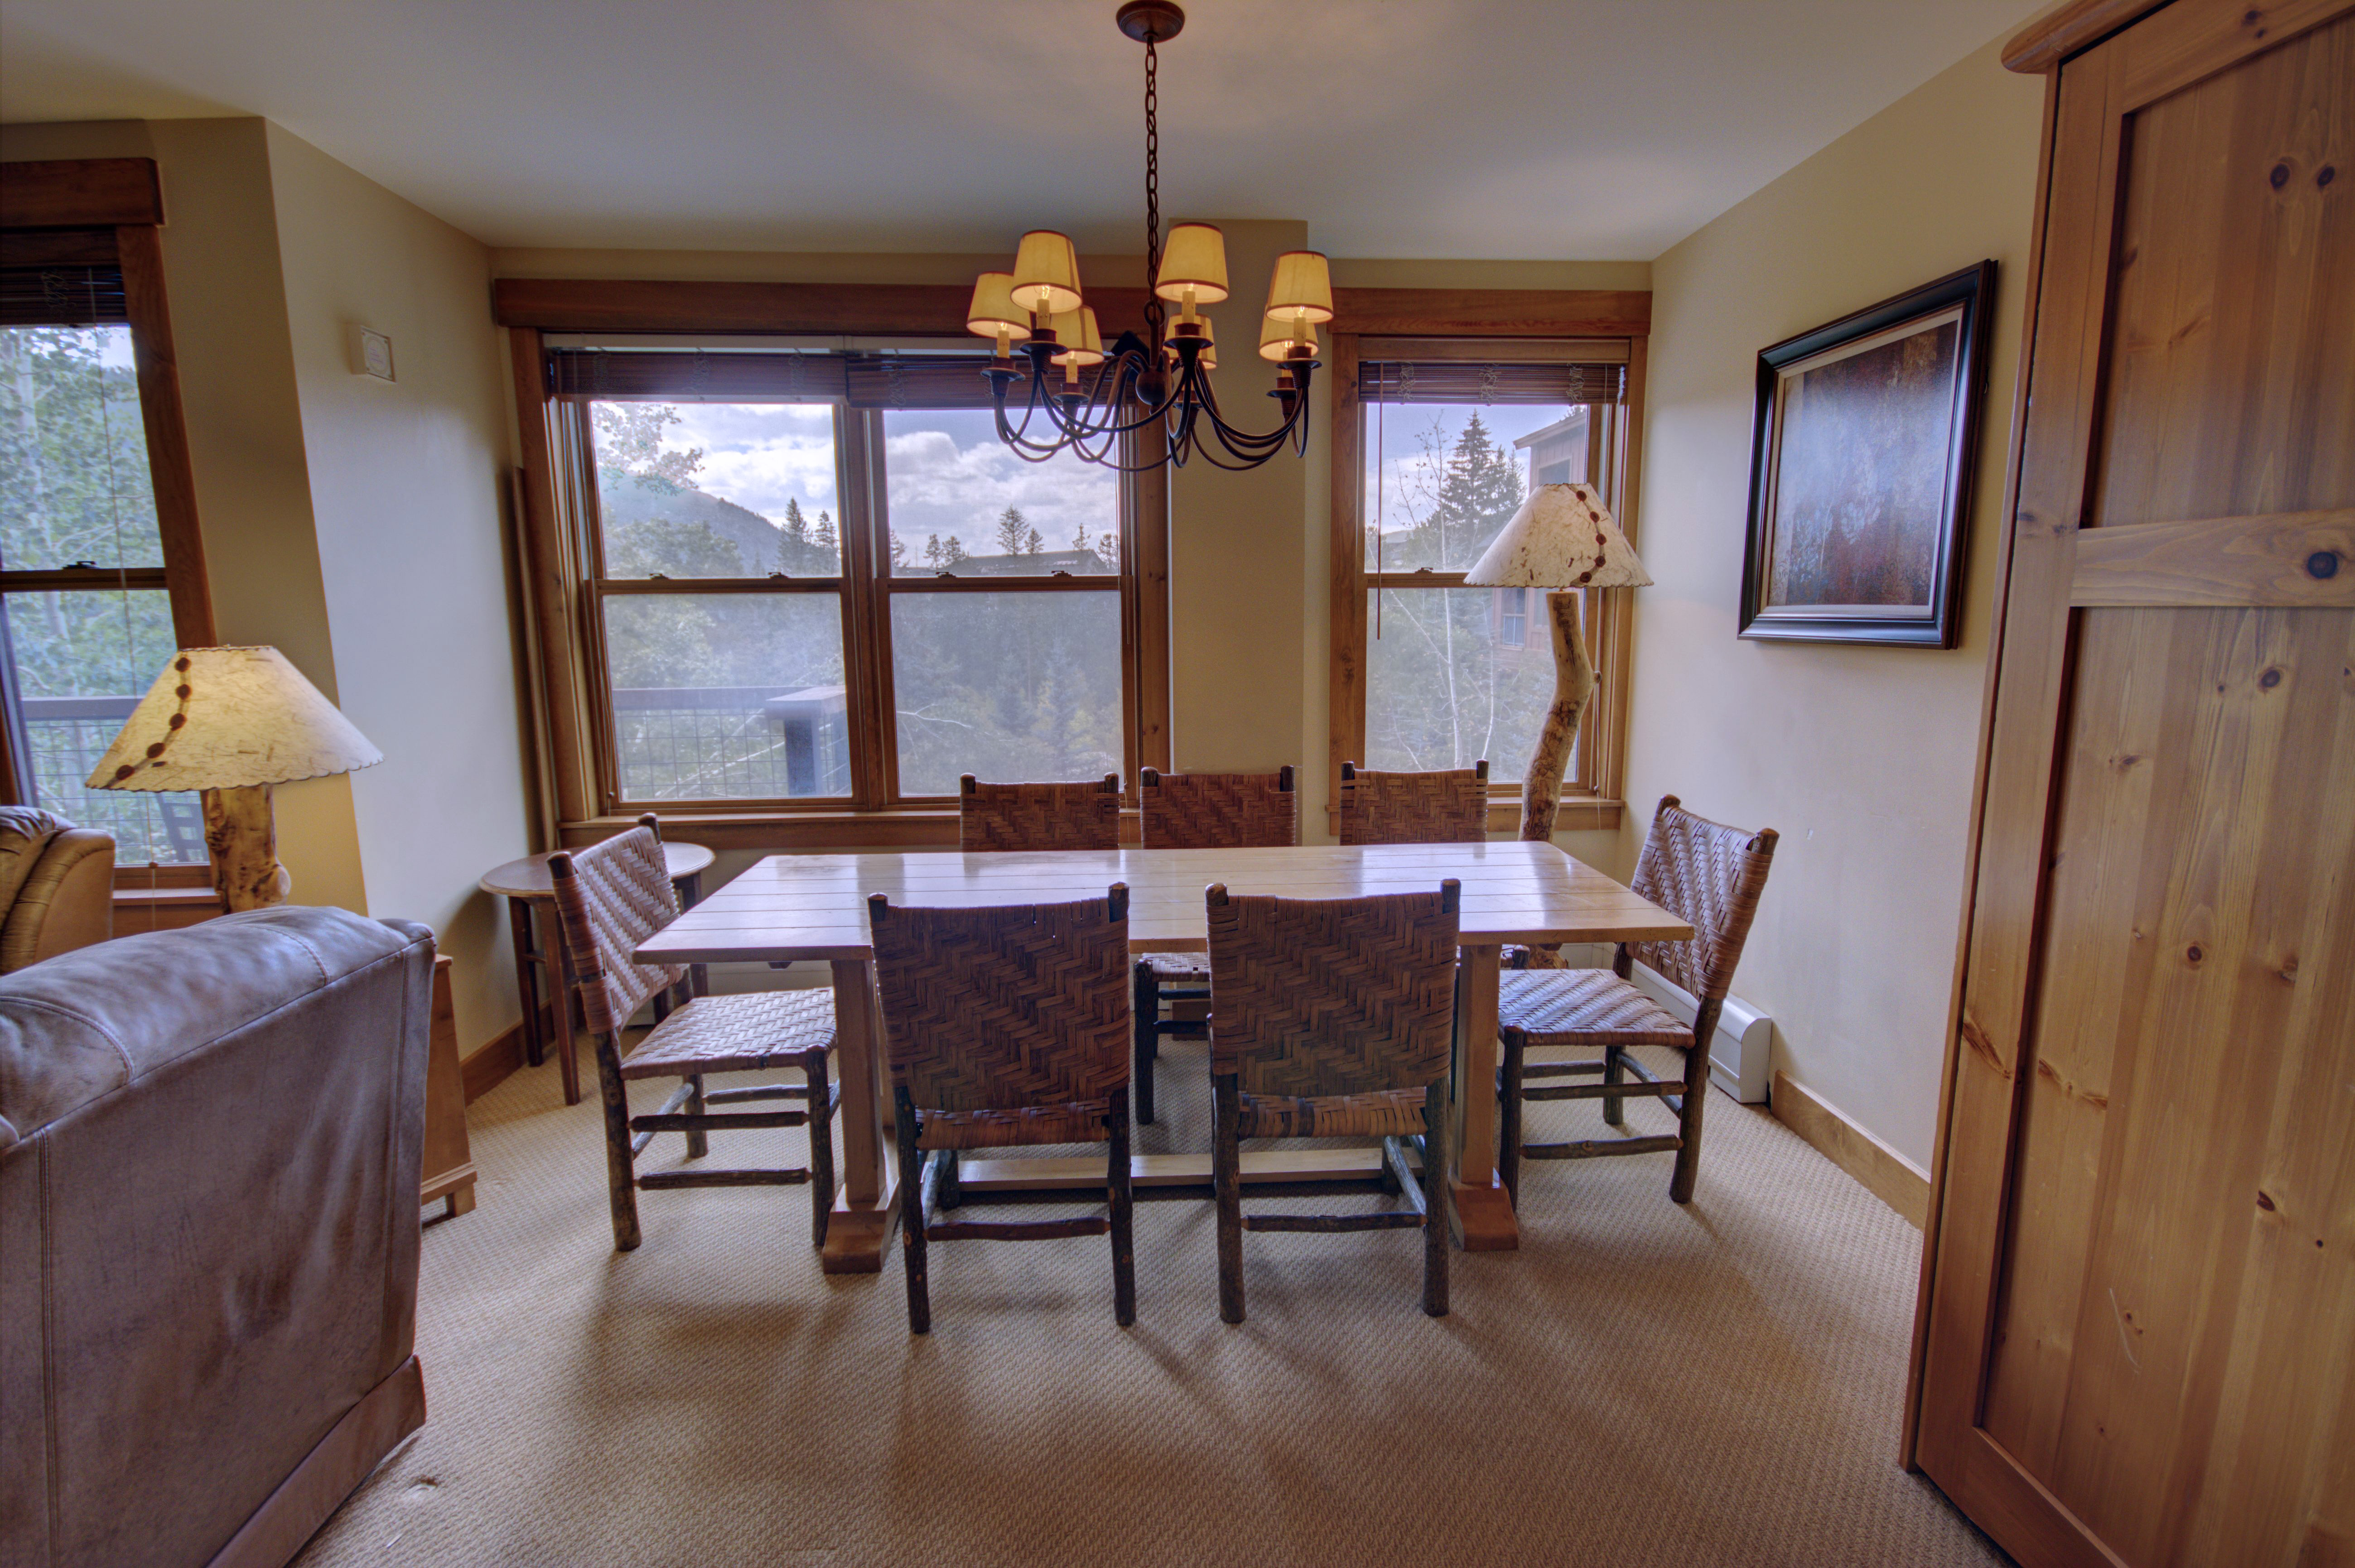 The dining table is a great place to have a family meal